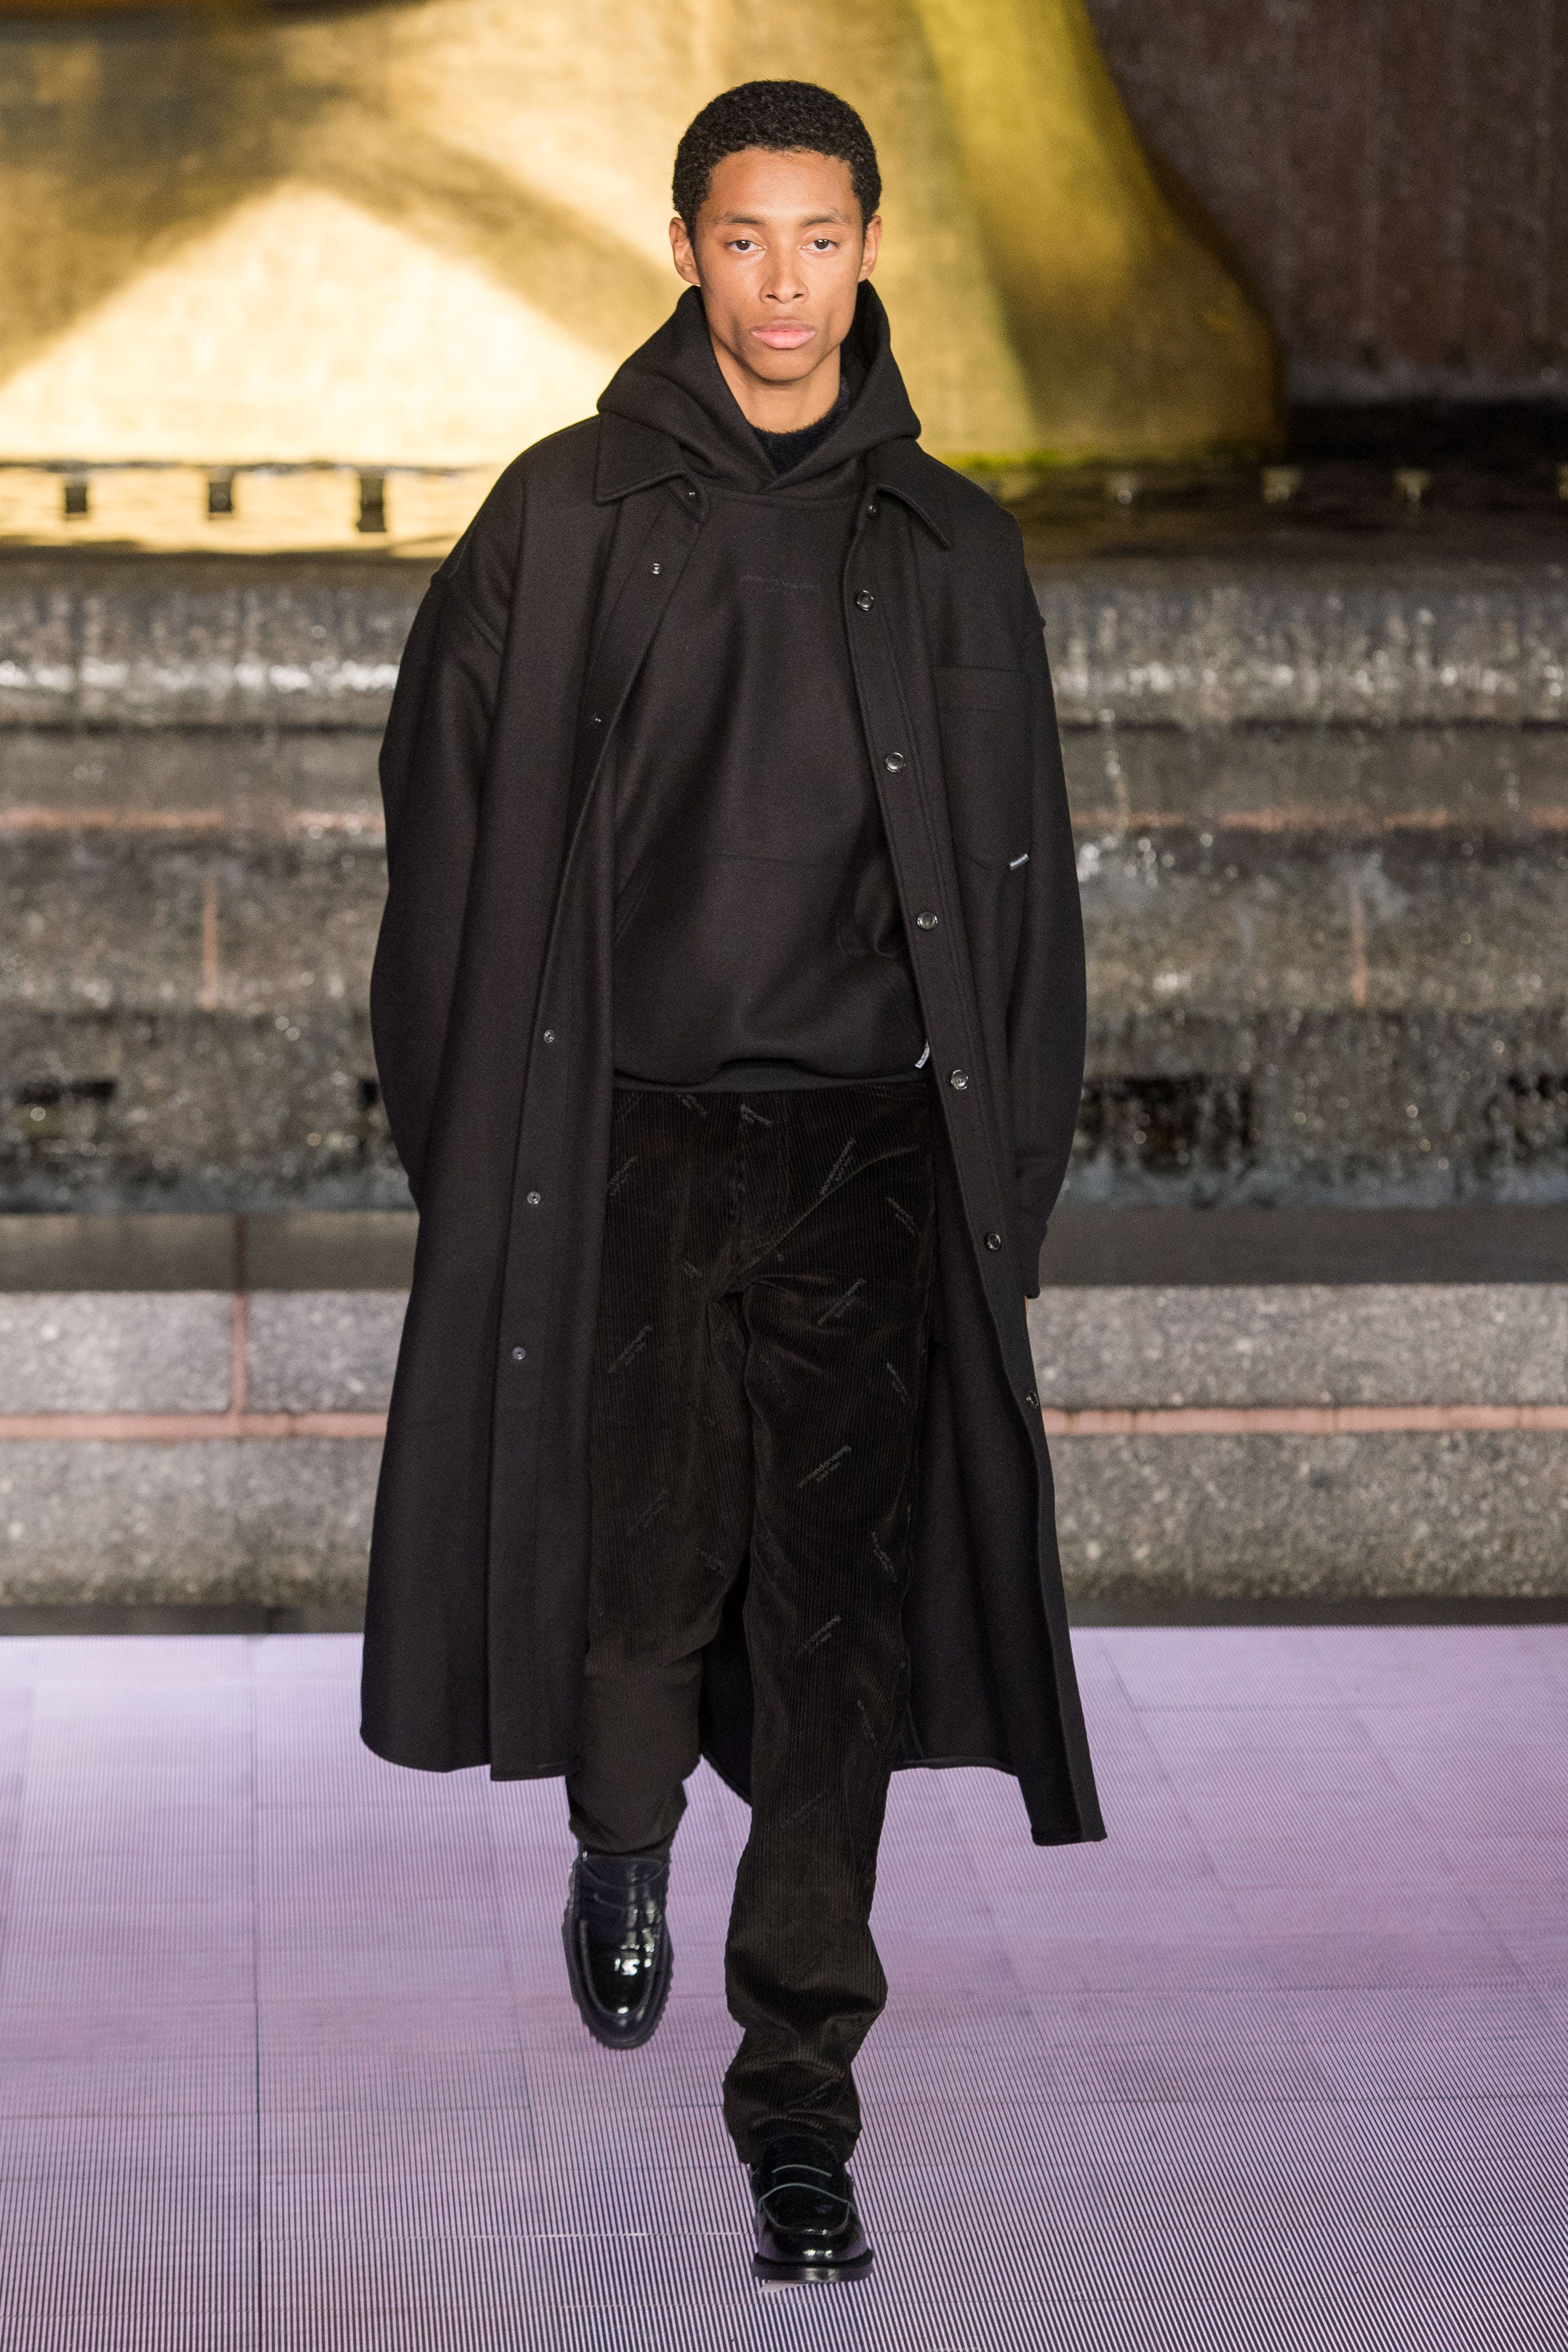 Alexander Wang Runway Oversized Shirt Coat in Black Hoodie in Black Corduroy Logo-Print Trousers in Black Spring 20 RTW